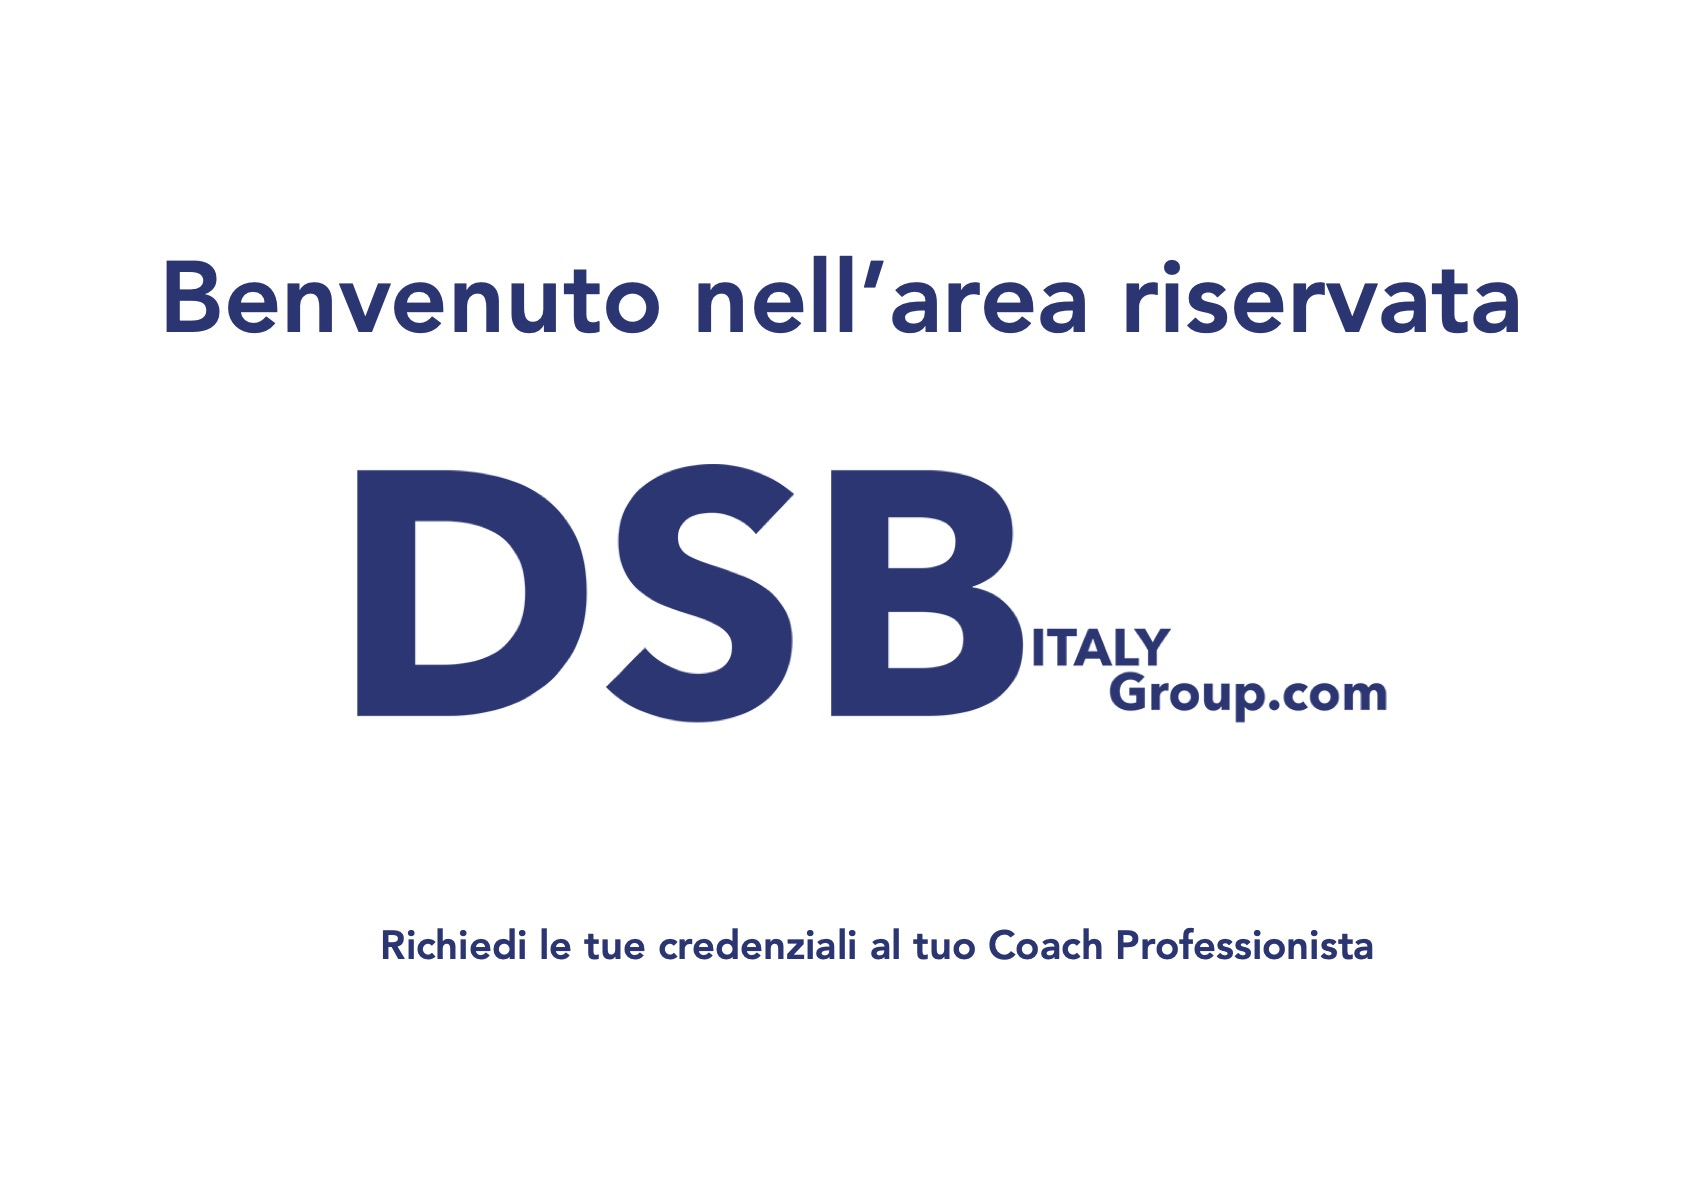 AREA RISERVATA DSB ITALY Group